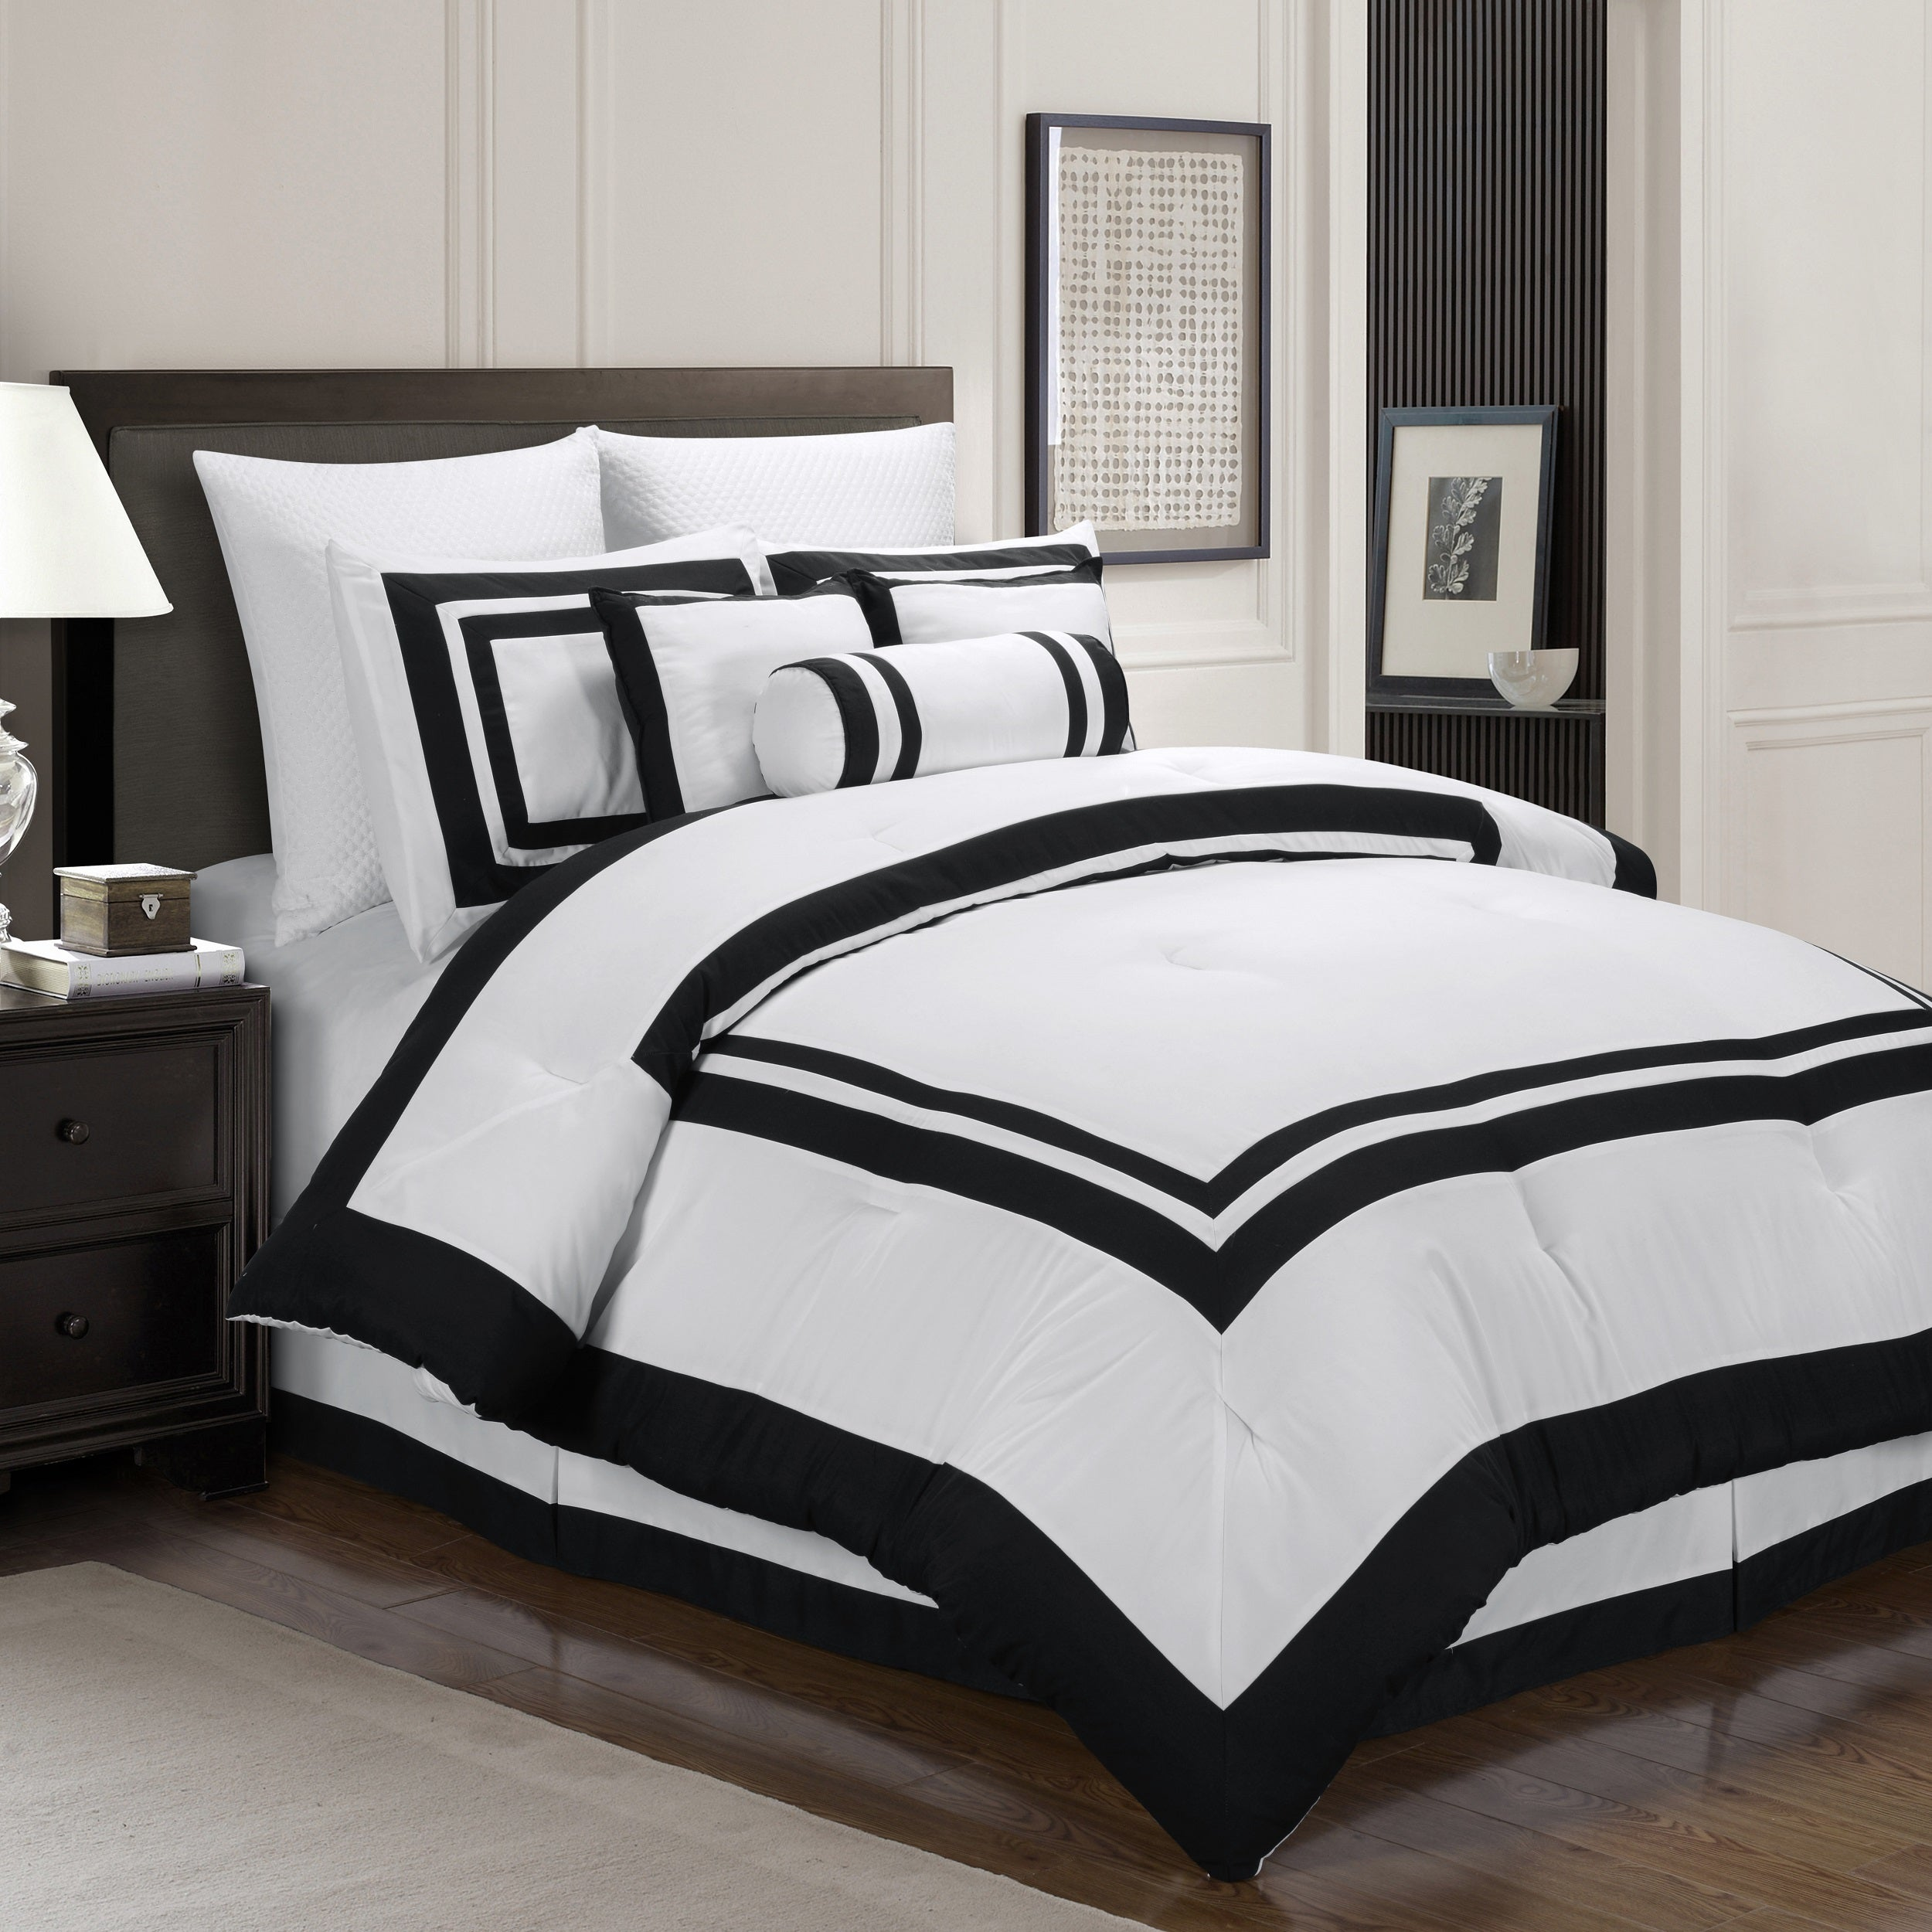 Hotel Capprice 7 Piece Comforter Set On Sale Overstock 16413268